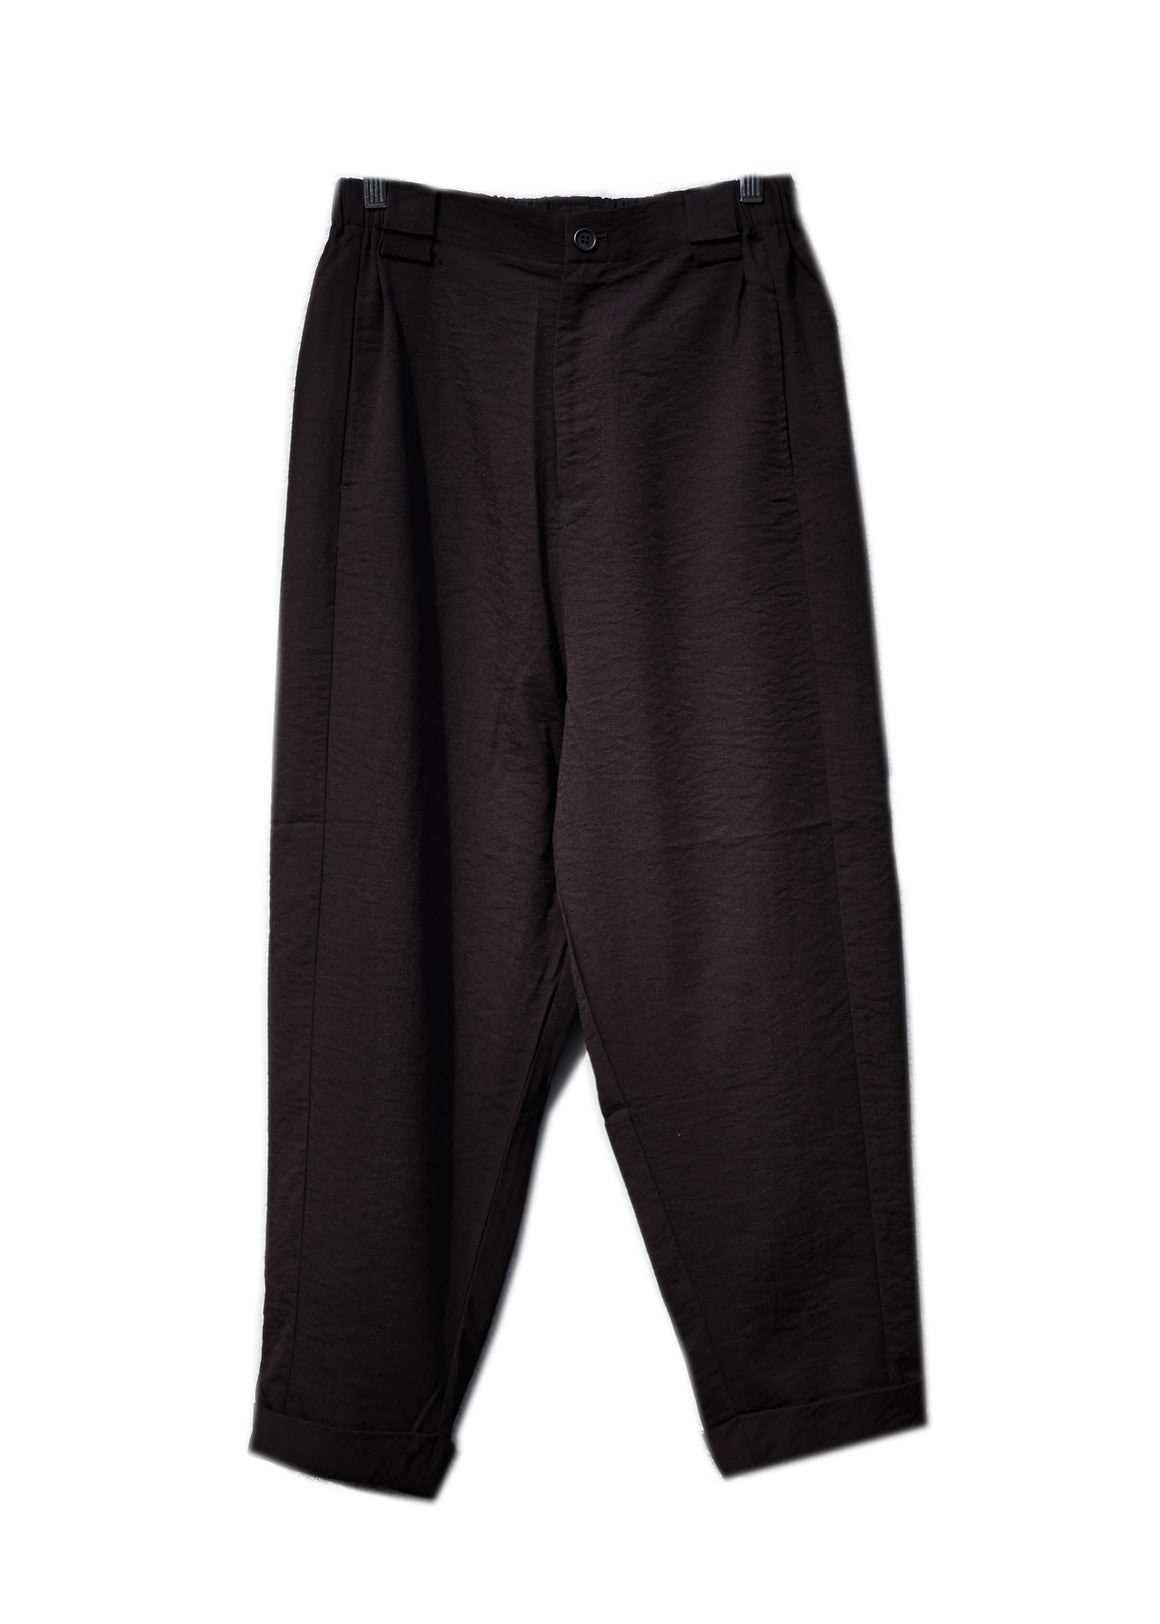 Moyuru Wide Vision Pants Pockets